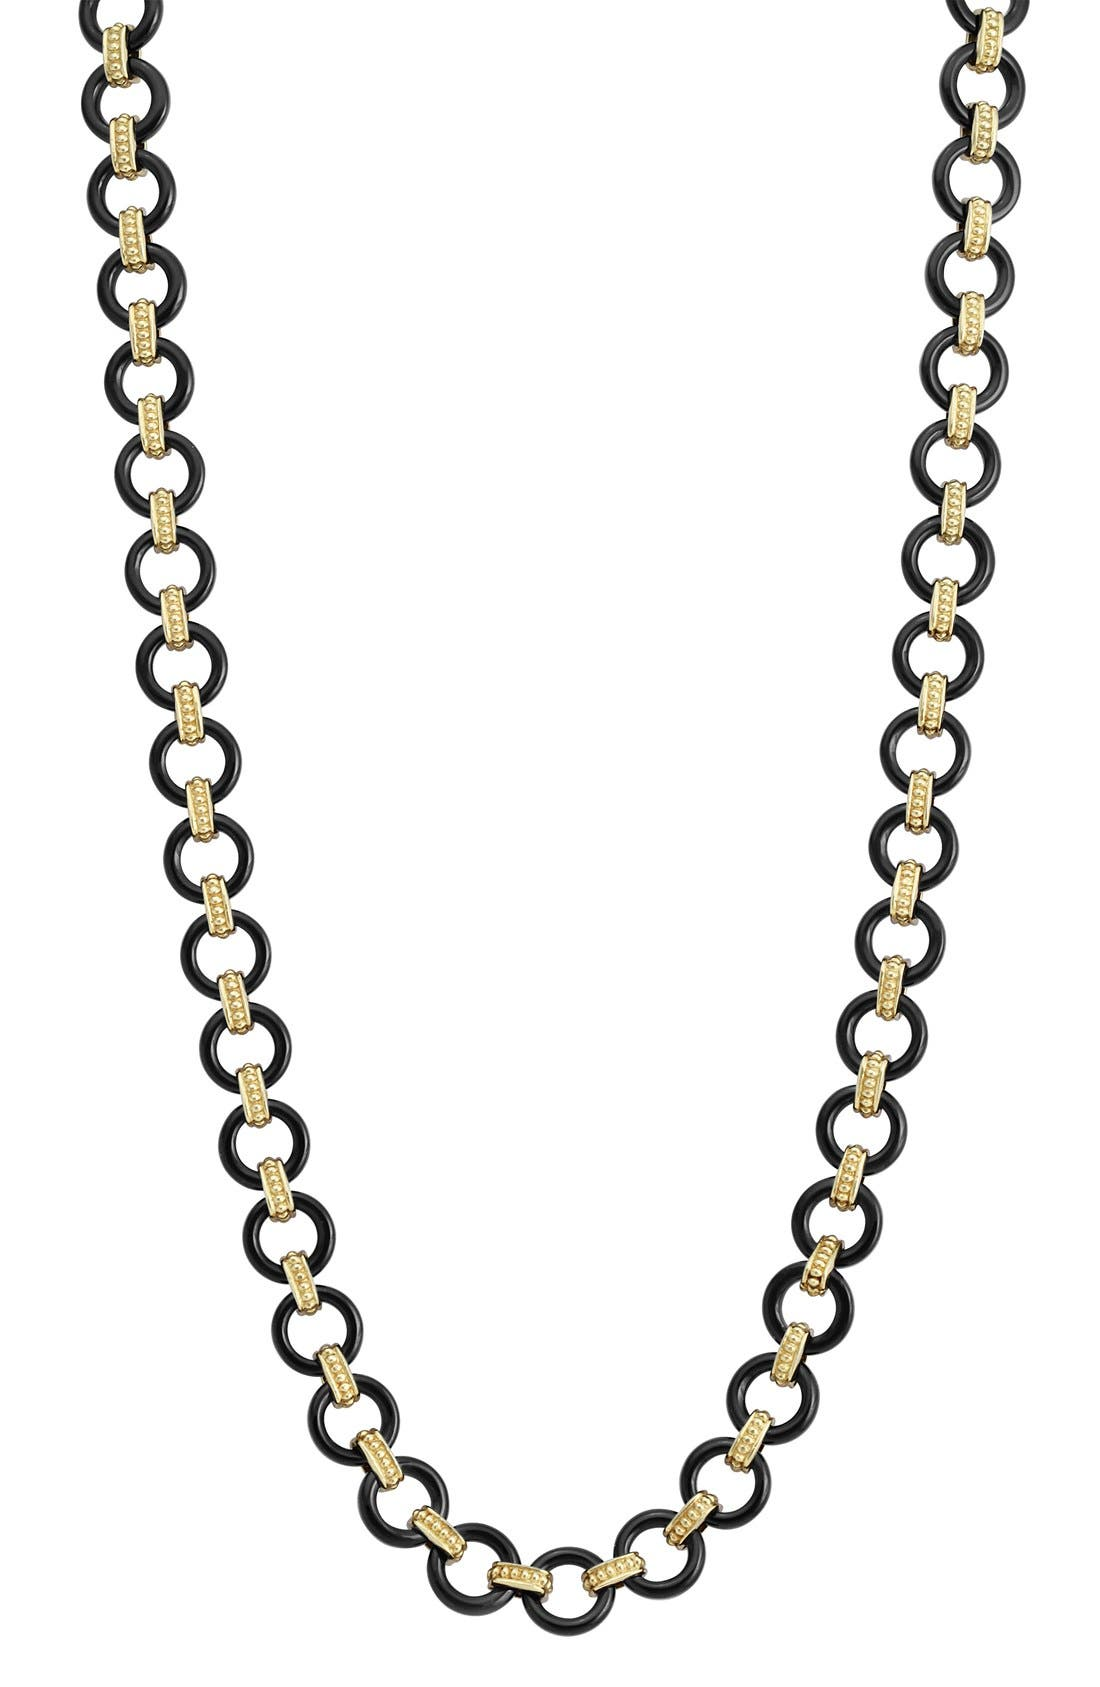 'Caviar Gold' Gold Link Necklace,                             Alternate thumbnail 3, color,                             001